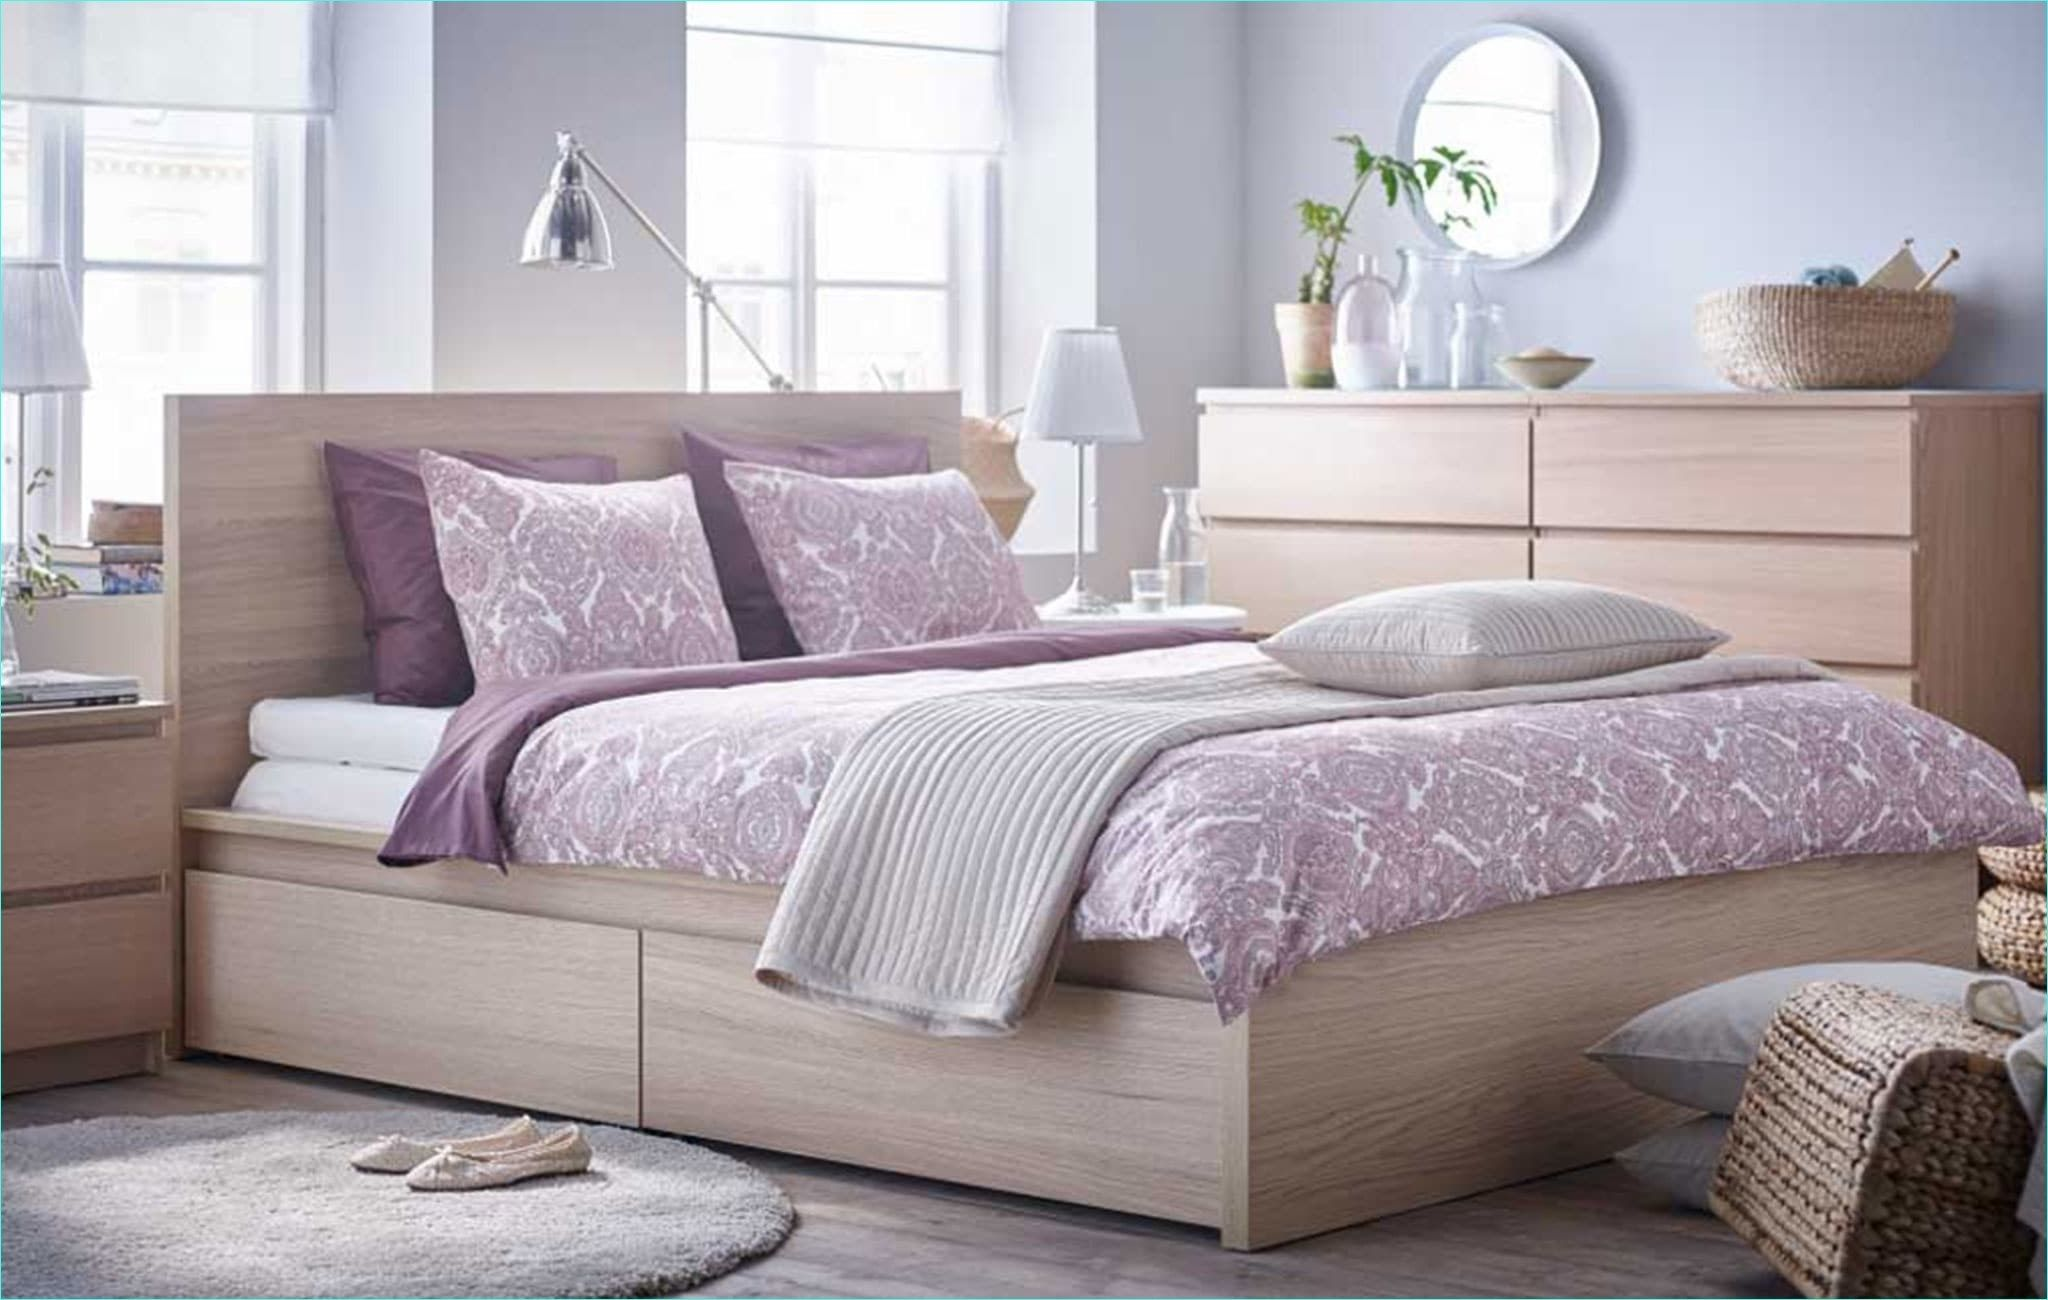 Bedroom Using Ikea Malm Bed 7 Truehome Furniture Uk Sets